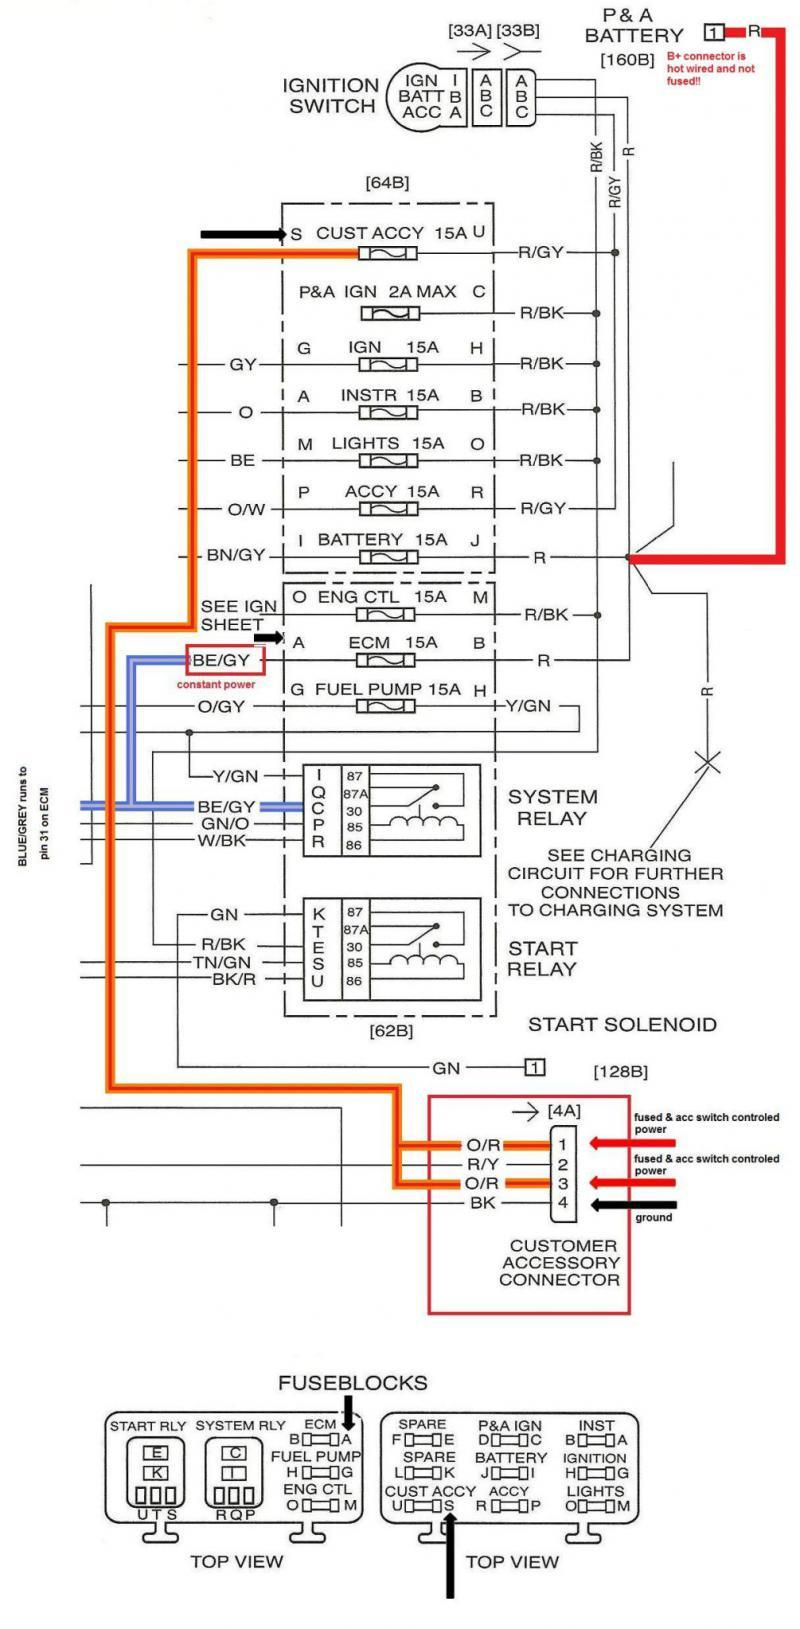 Harley Dyna Wiring Harness Diagram - Gm 7 Pin Trailer Wiring Diagram Free  Picture - viking.yenpancane.jeanjaures37.frWiring Diagram Resource